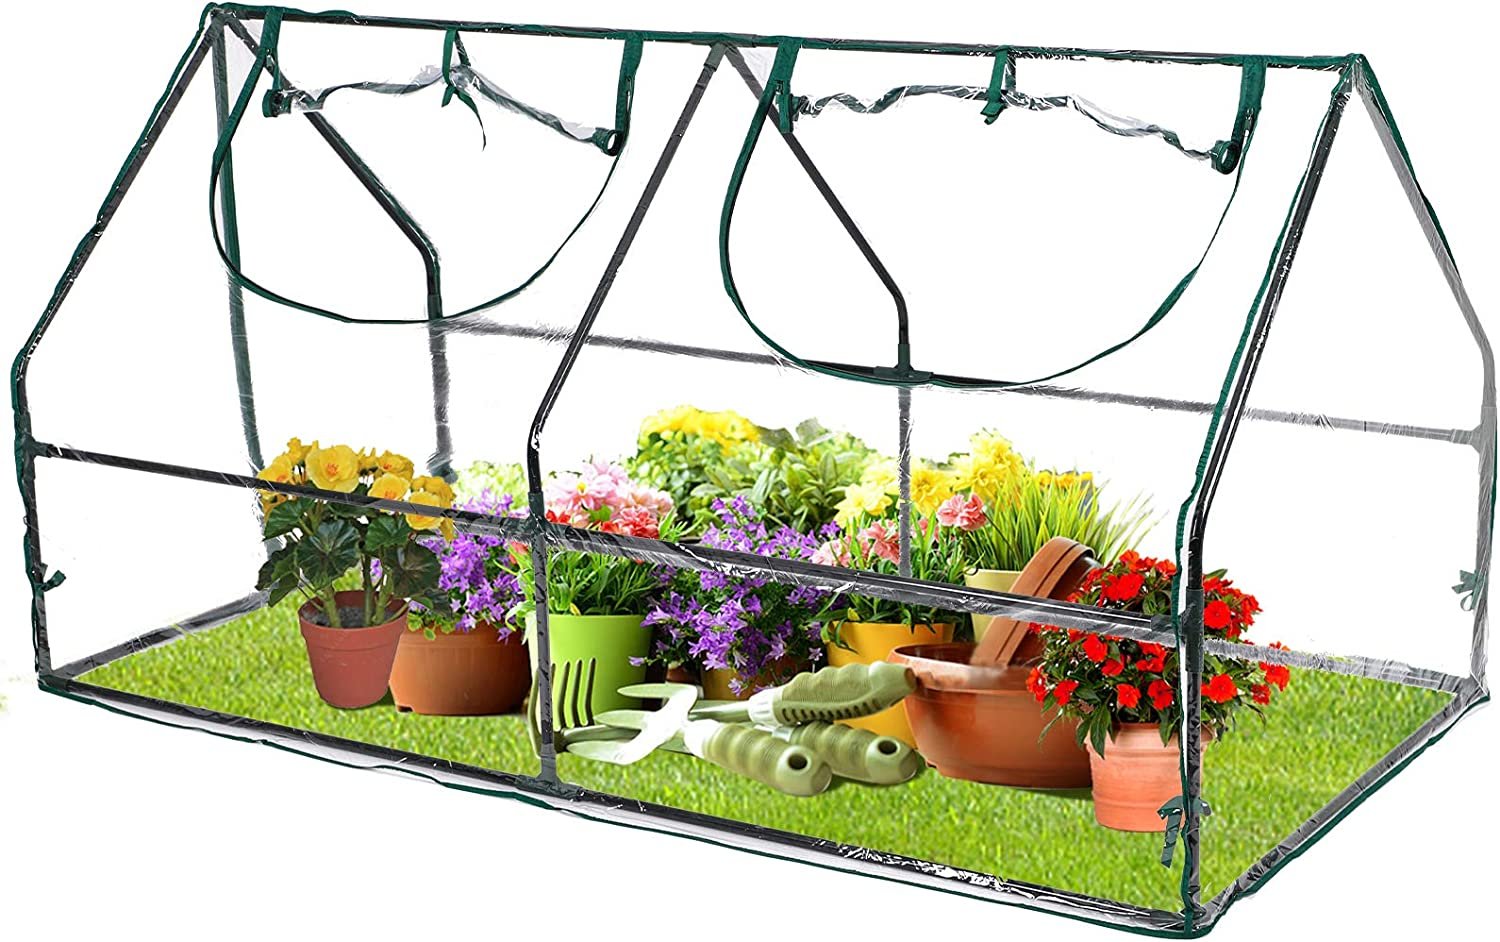 Portable Mini Greenhouse for Raised Garden Bed, 6.0' x 3.0' x 3.0' Mini Clear Green House for Indoor Outdoor with PE Cover and Roll-Up Zipper Door for Seedling, Flowers, Plant Growing